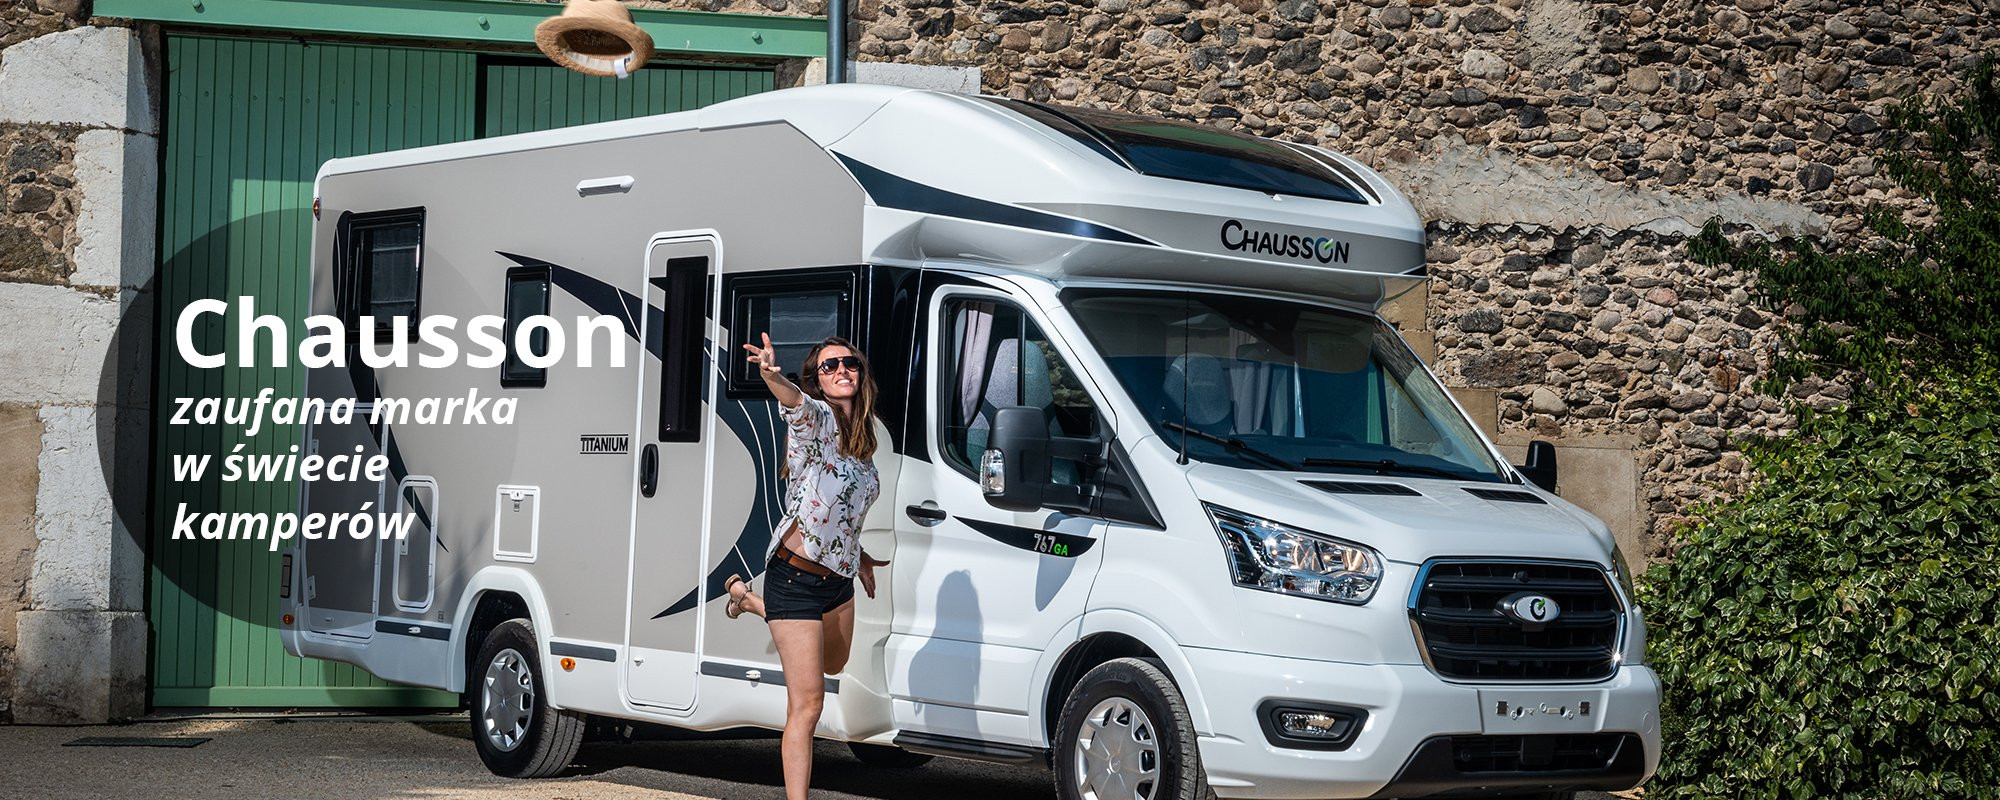 /thumbs/fit-2000x800/2019-08::1567163484-chausson-kampery01.jpg